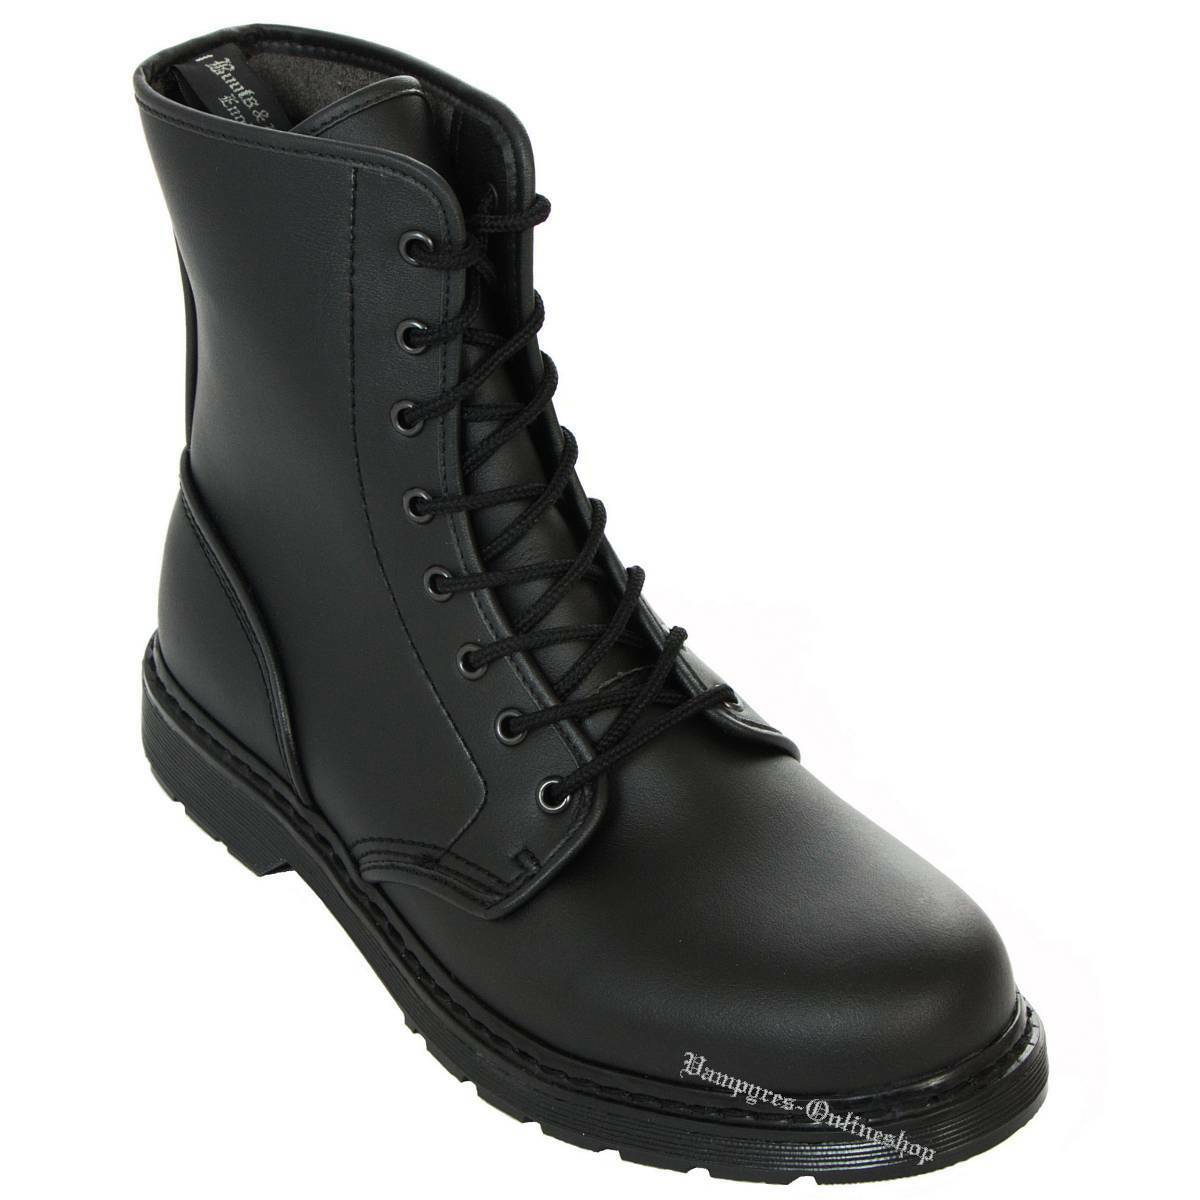 Boots and braces Easy 8 agujeros negro Vegetarian botas de cuero zapatos Noir Nero